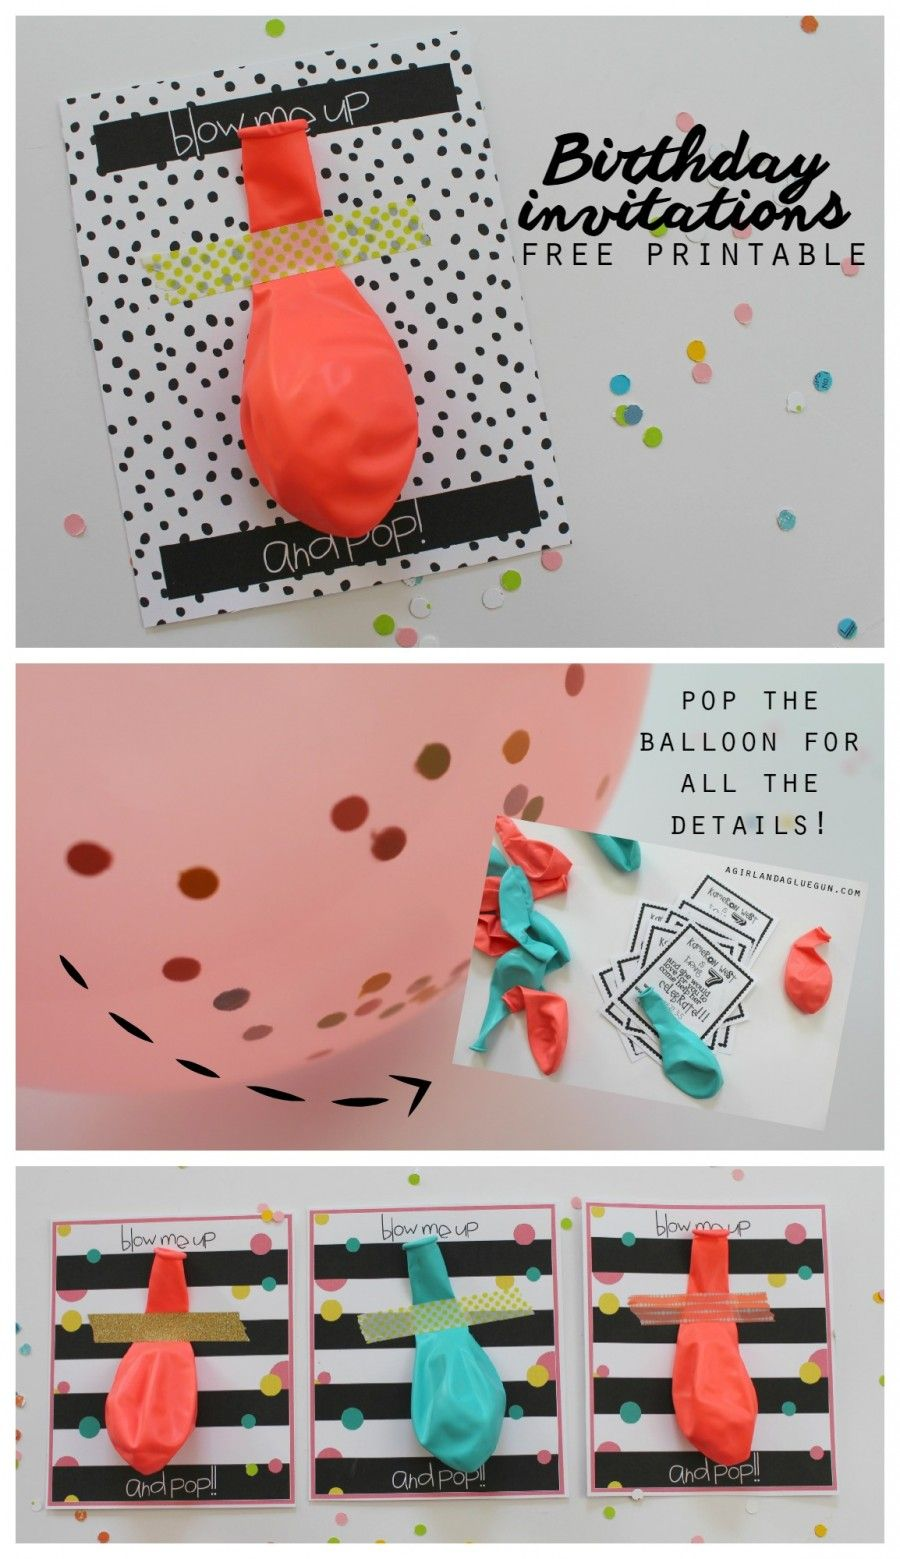 Fun And Unique Birthday Printables Pop The Balloon Hidden Inside Is All Details